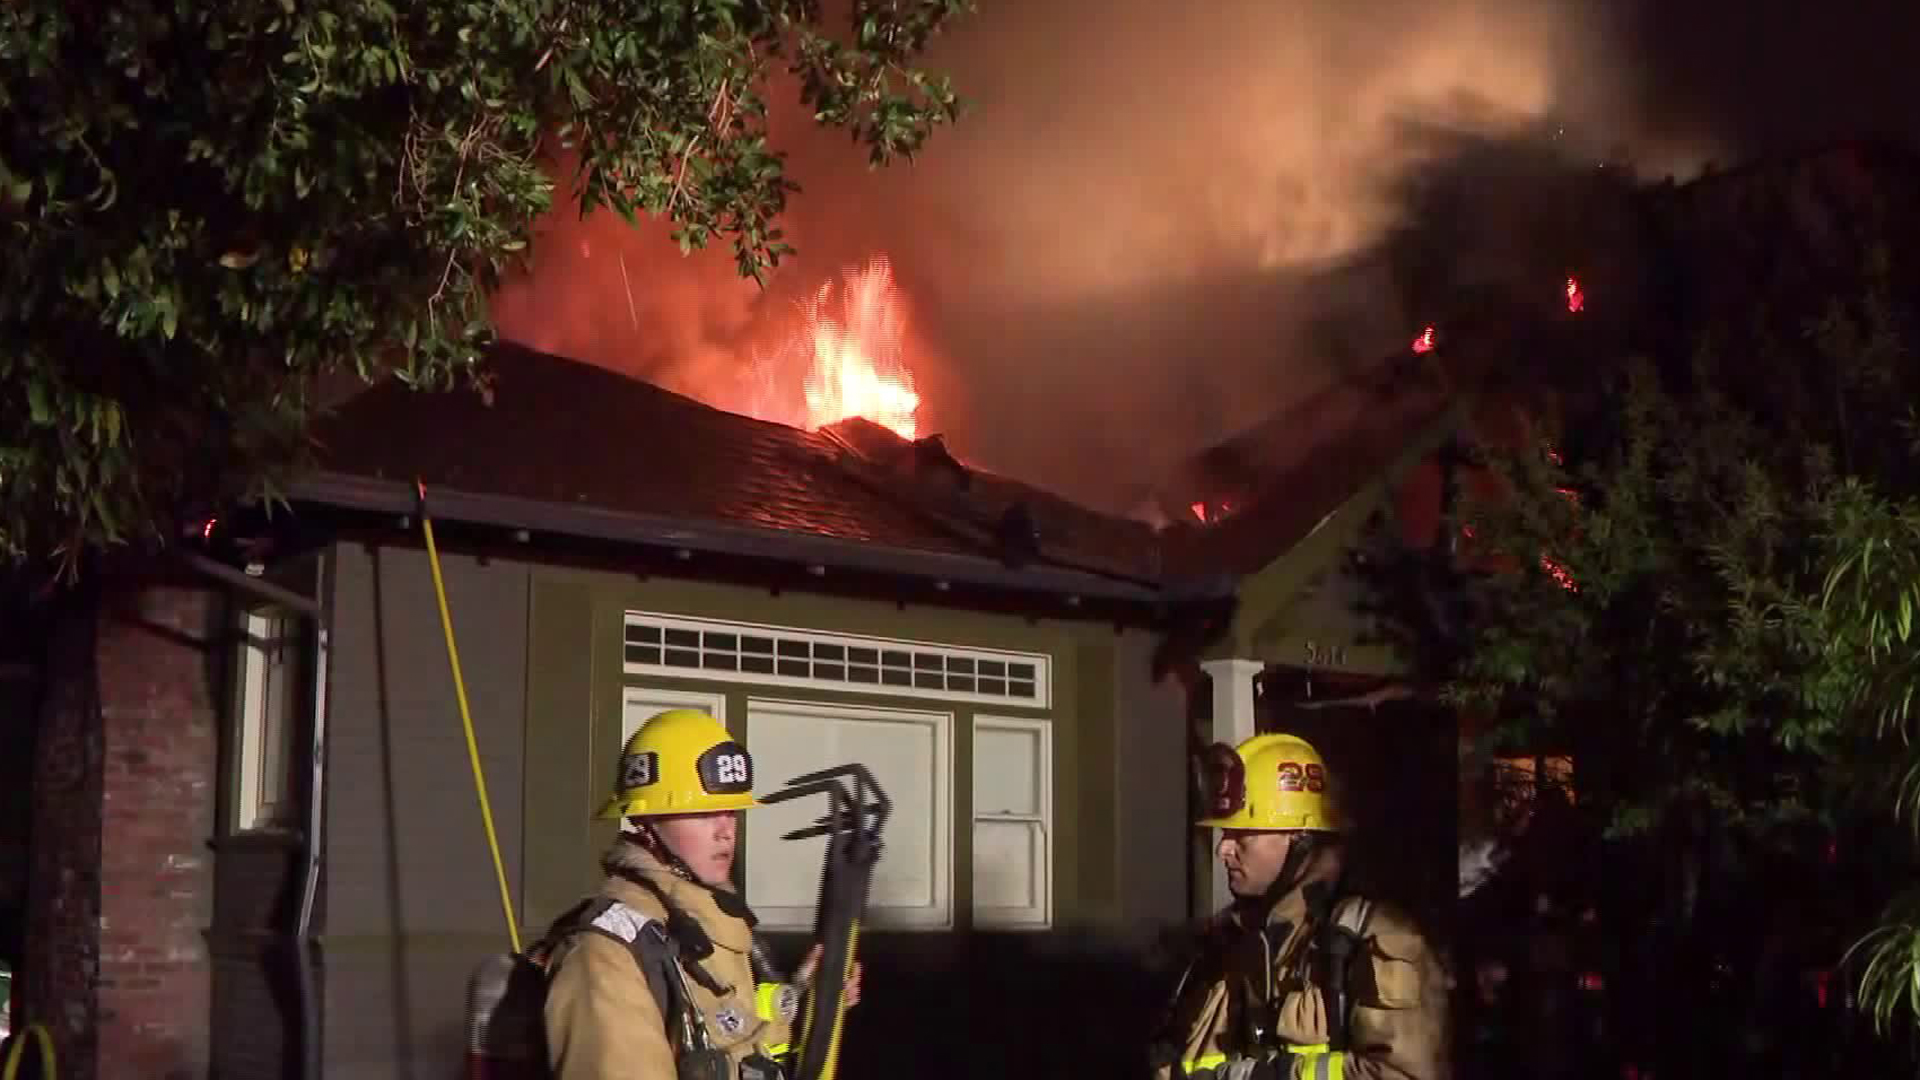 Firefighters respond to a blaze in Hollywood on June 25, 2019. (Credit: KTLA)